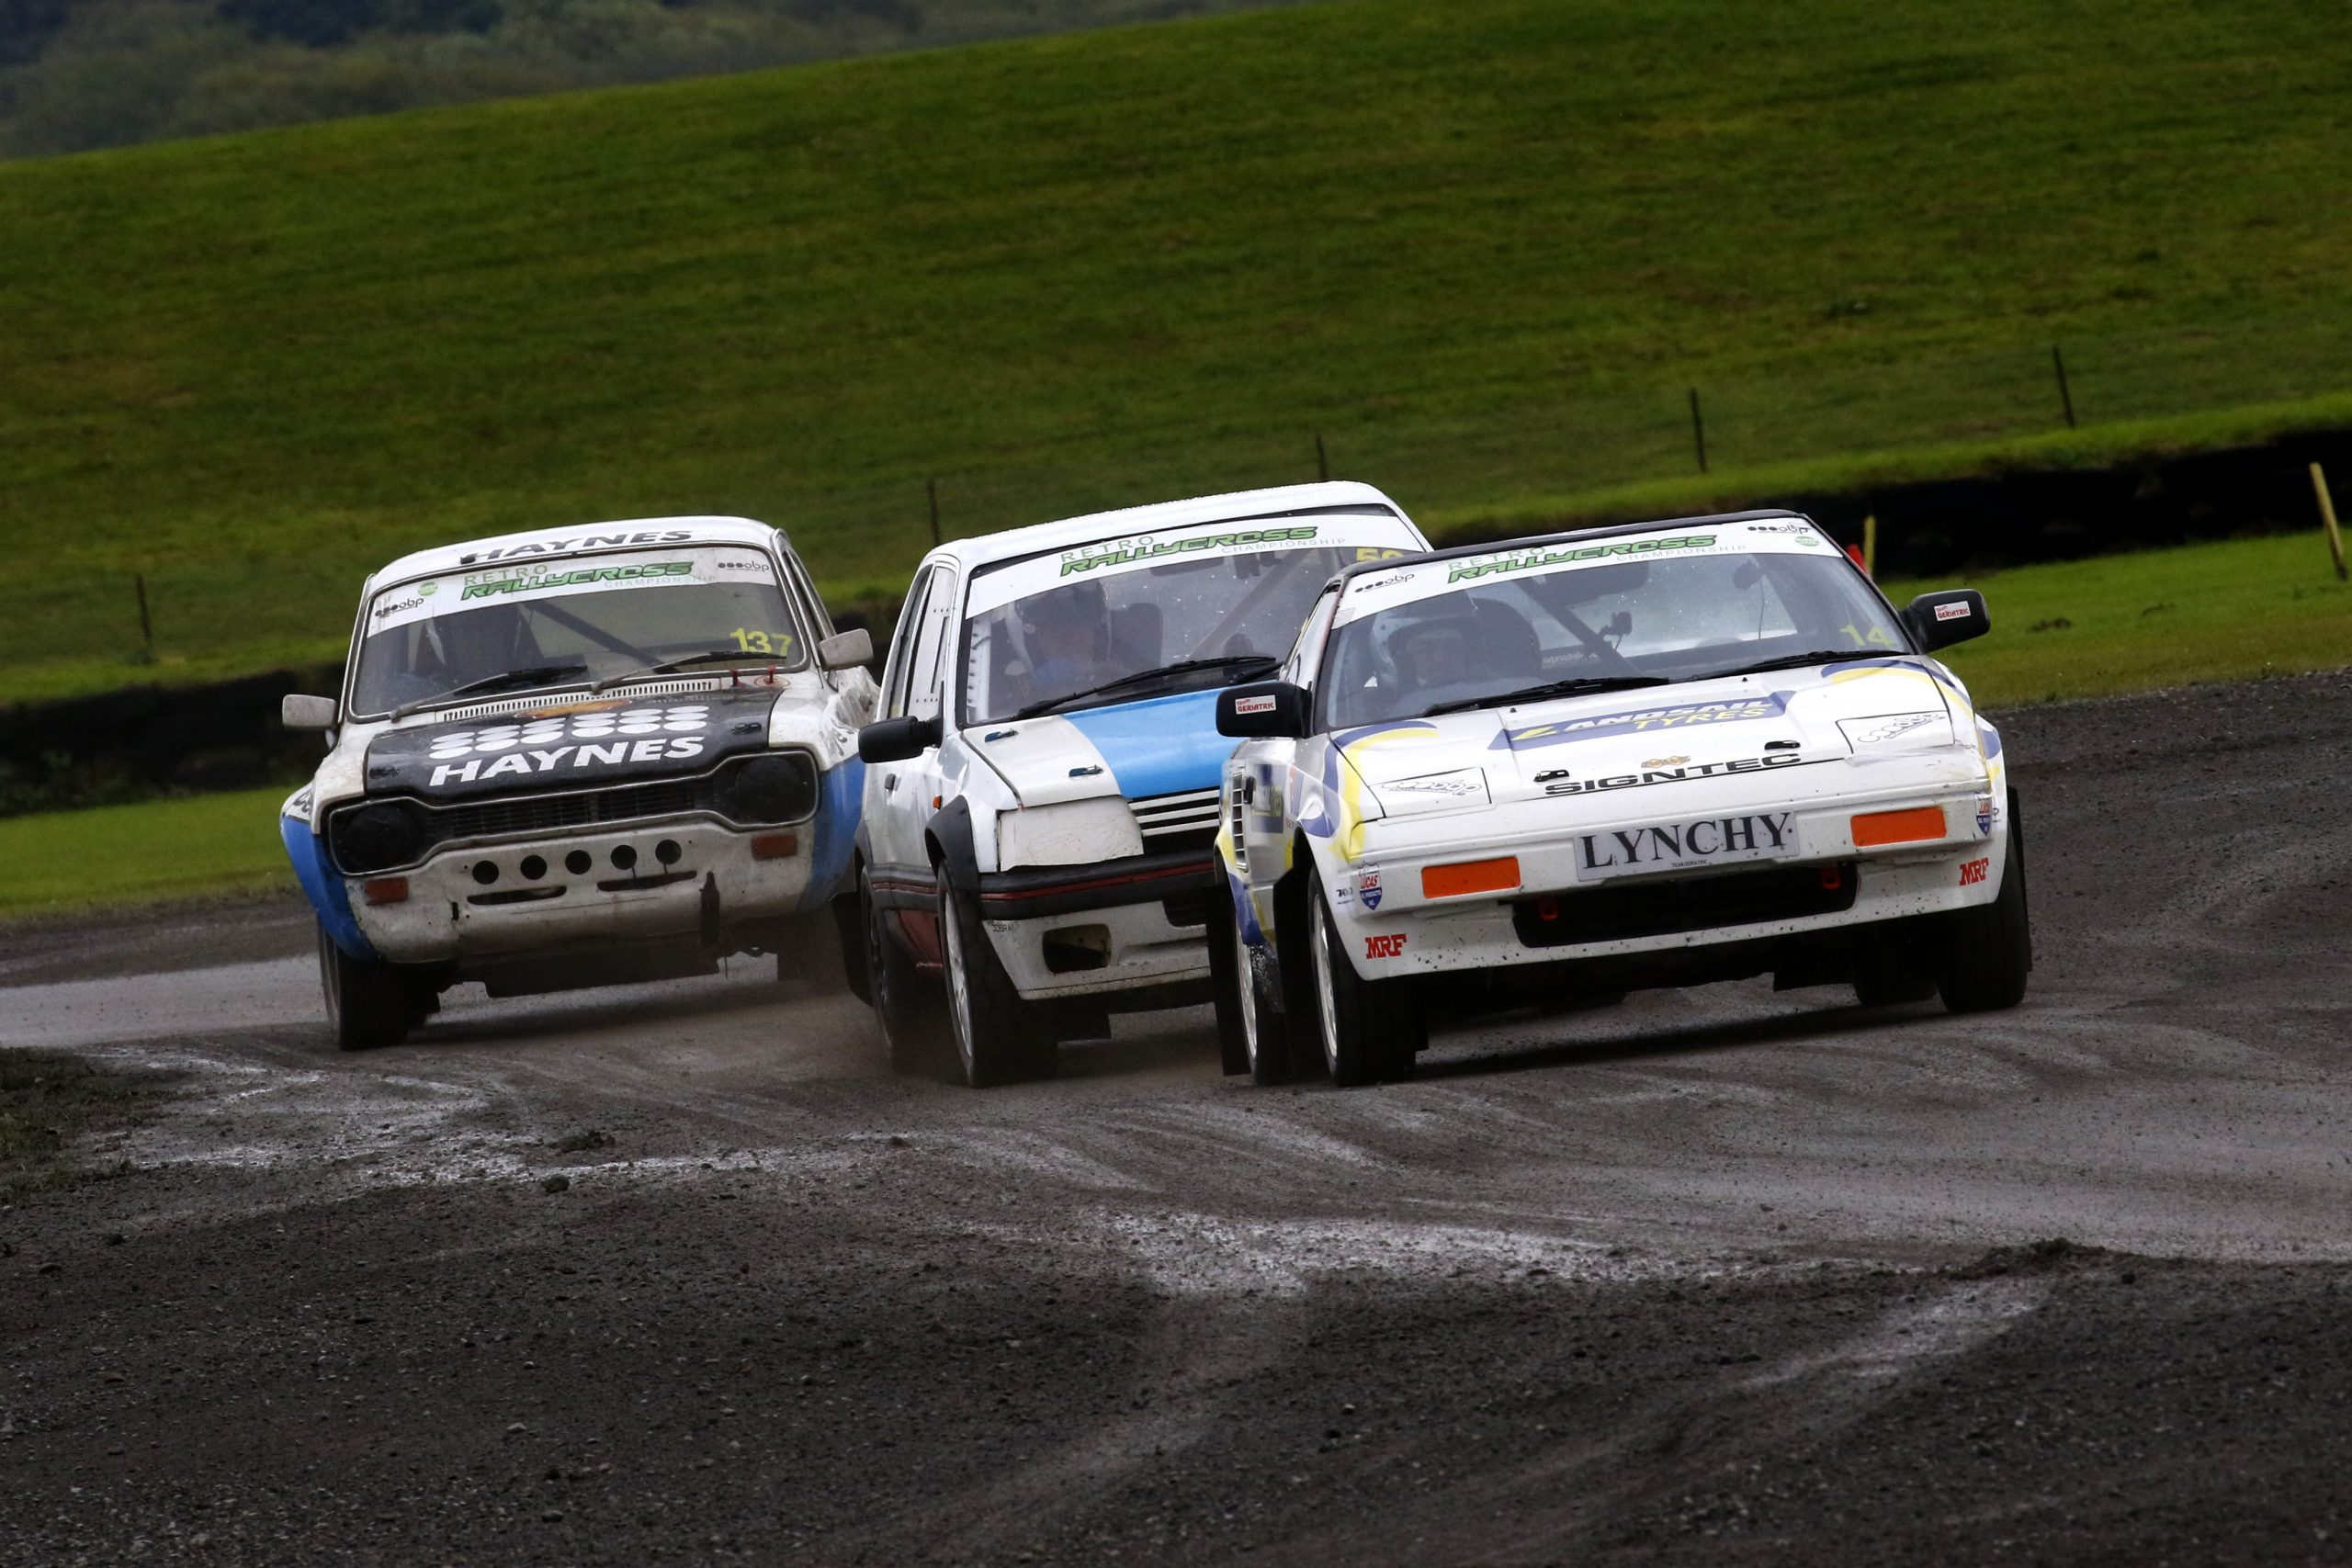 Double duty for Tony Lynch with expanded rallycross programme